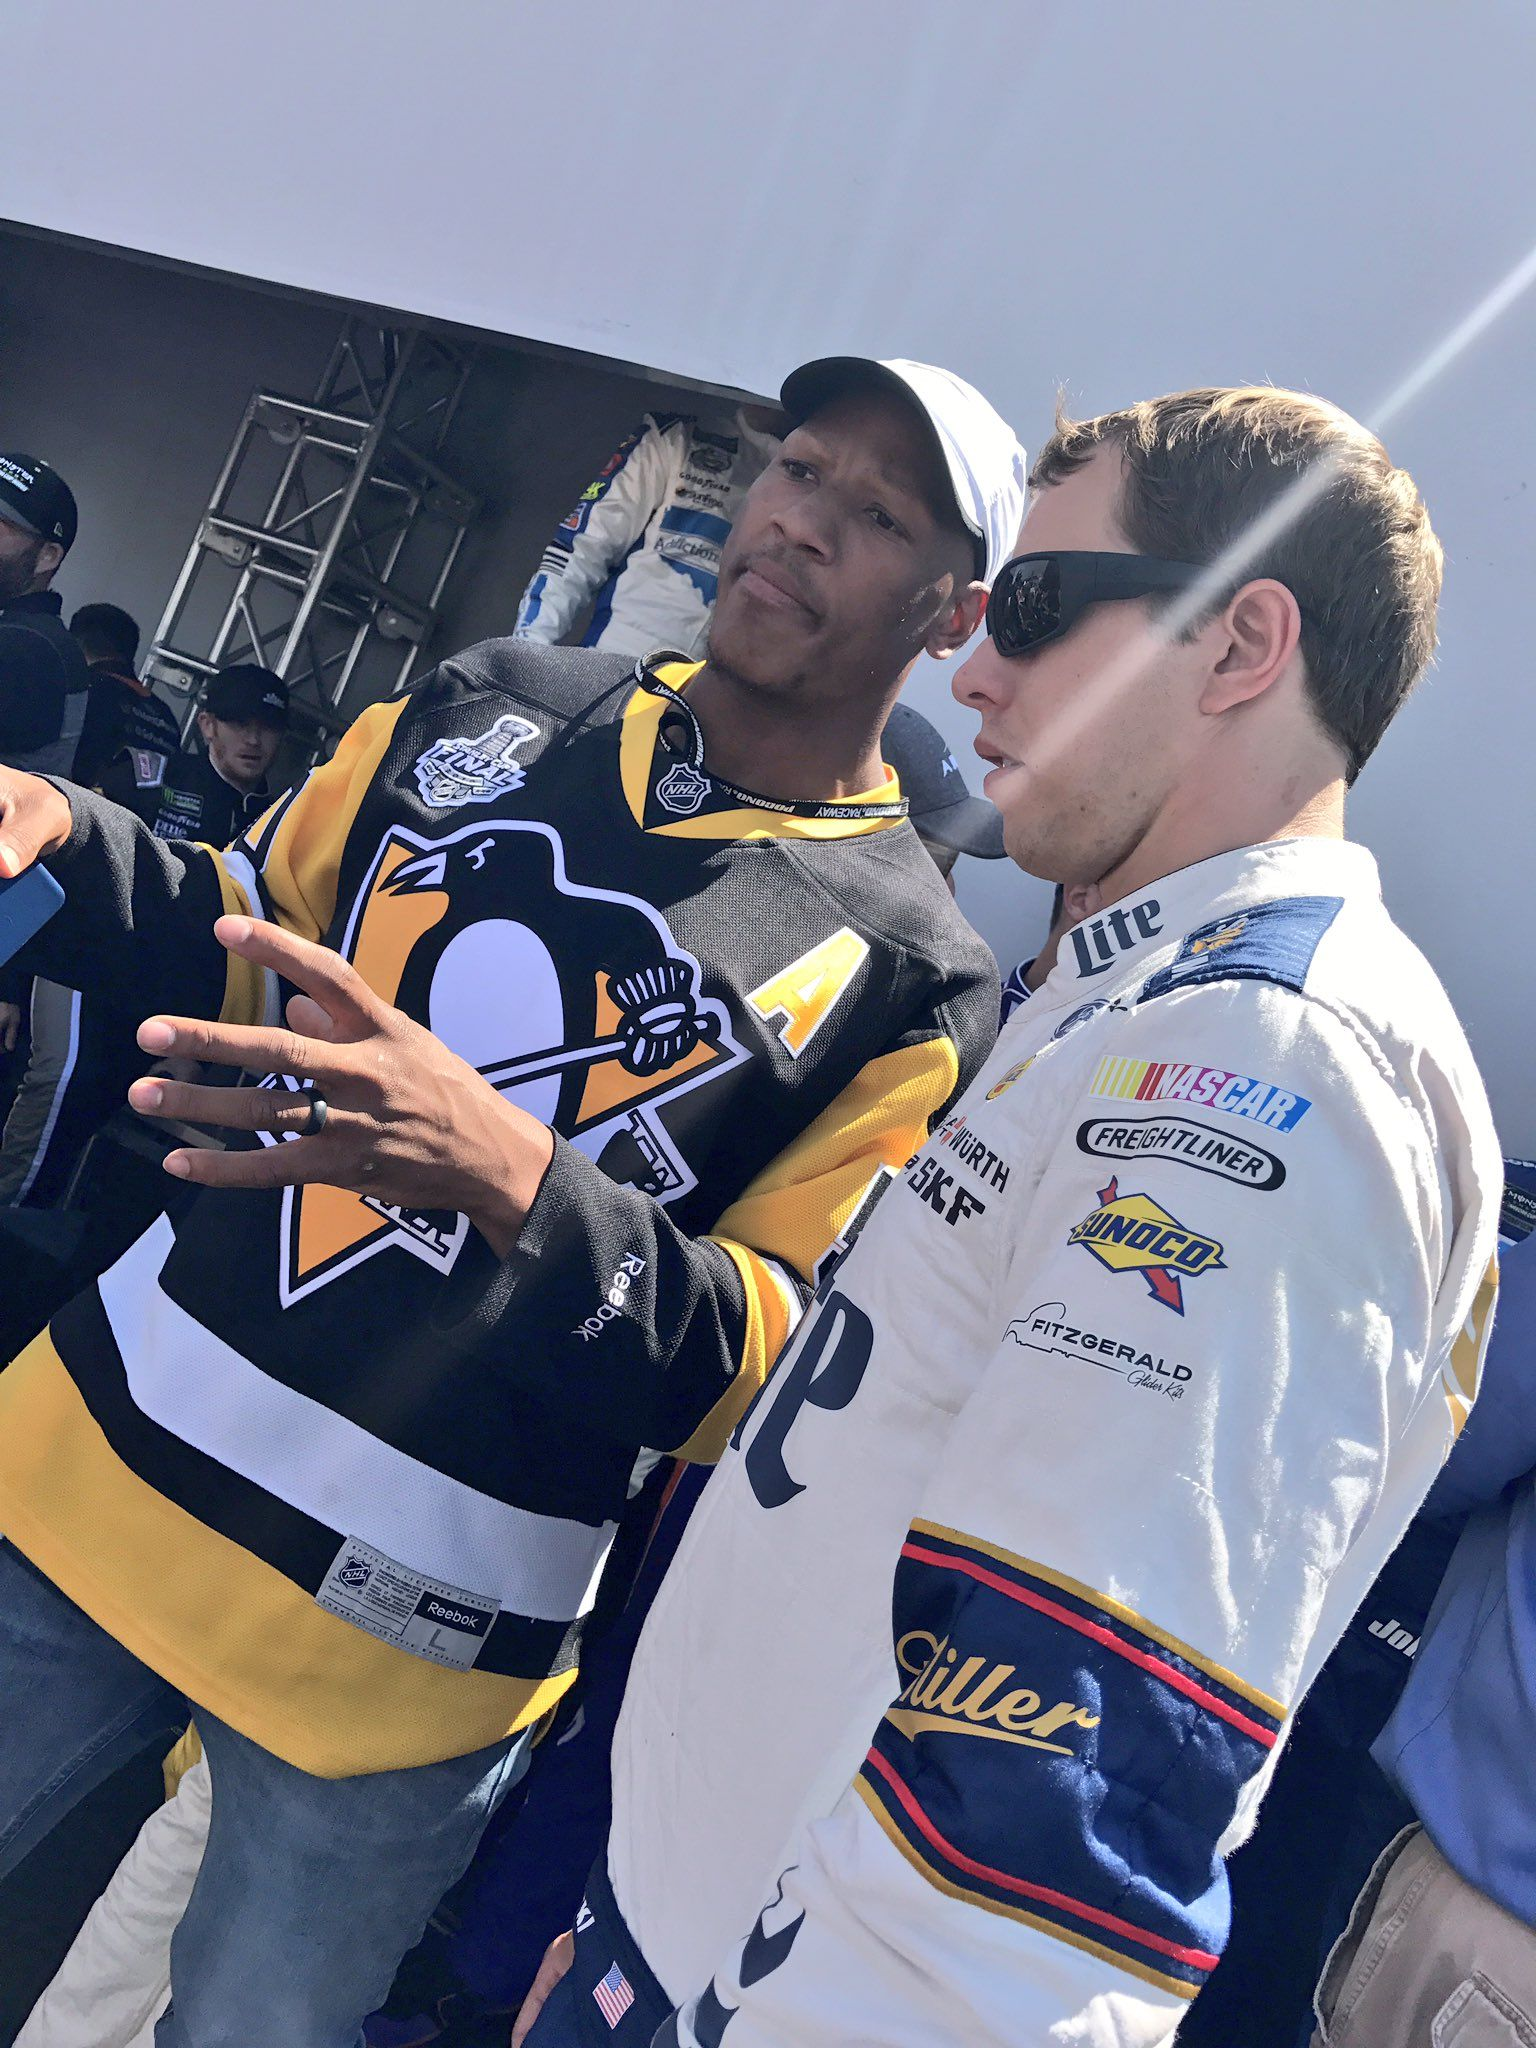 """NASCAR on Twitter: """".@keselowski chats with @RyanShazier of the Pittsburgh @Steelers. https://t.co/0NOKyjNOOD"""""""